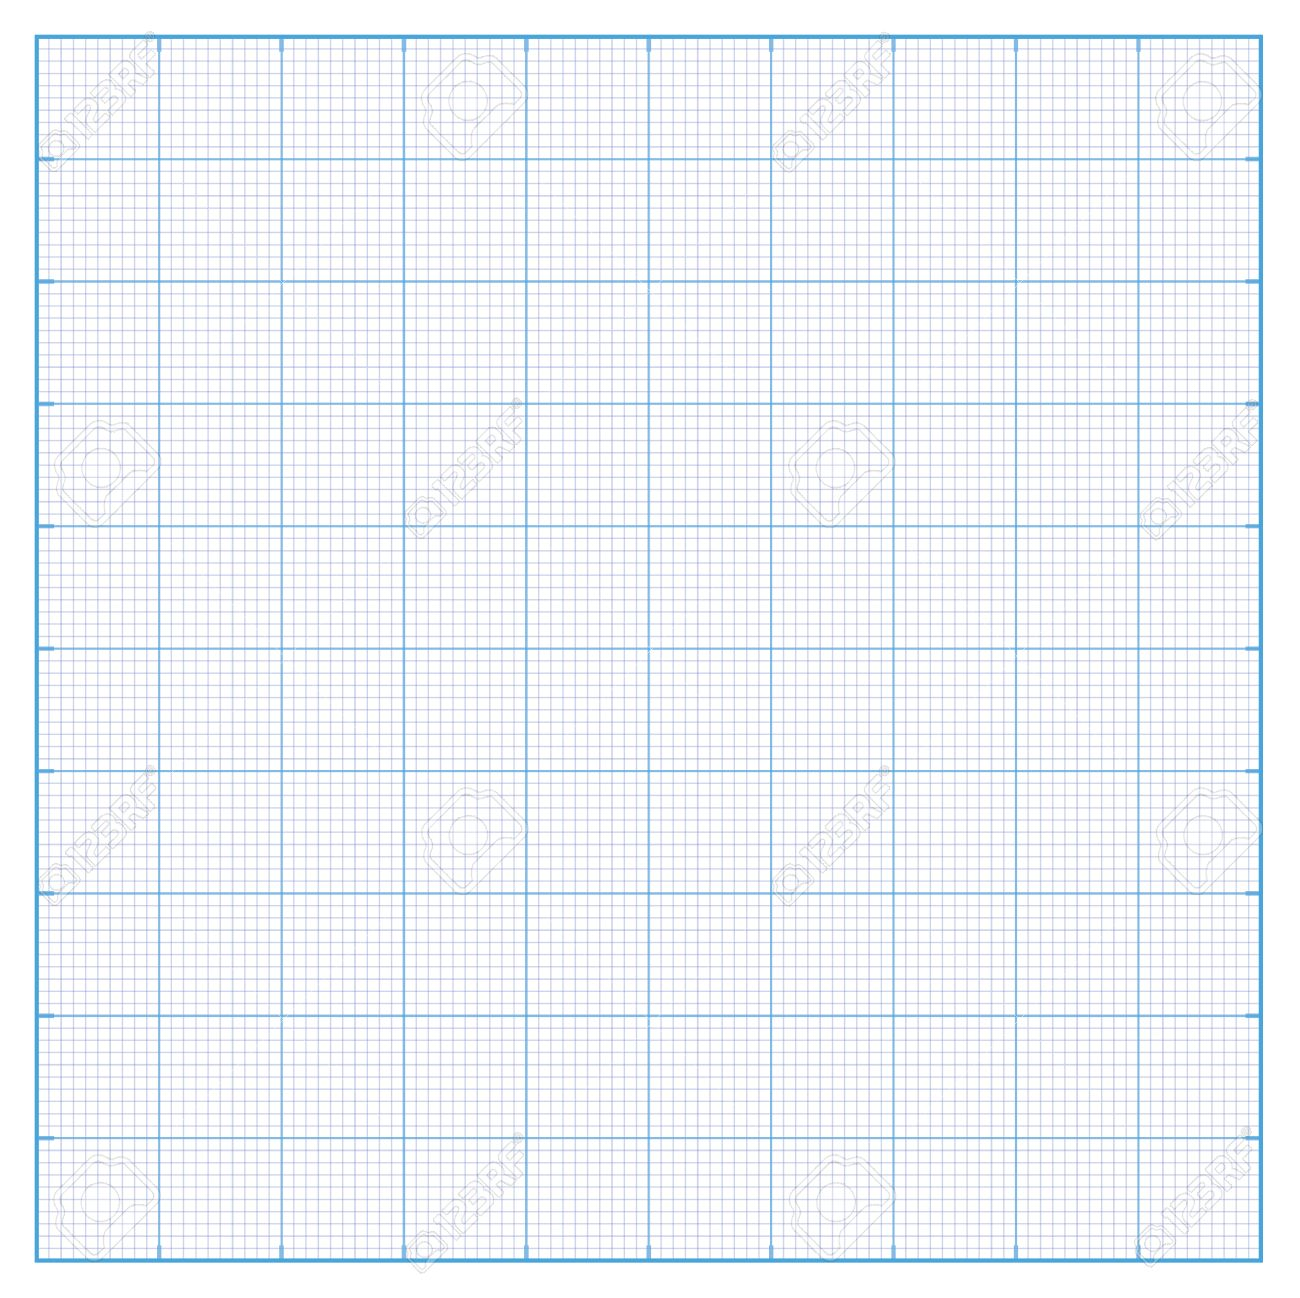 millimeter paper grid 100mm size royalty free cliparts vectors and